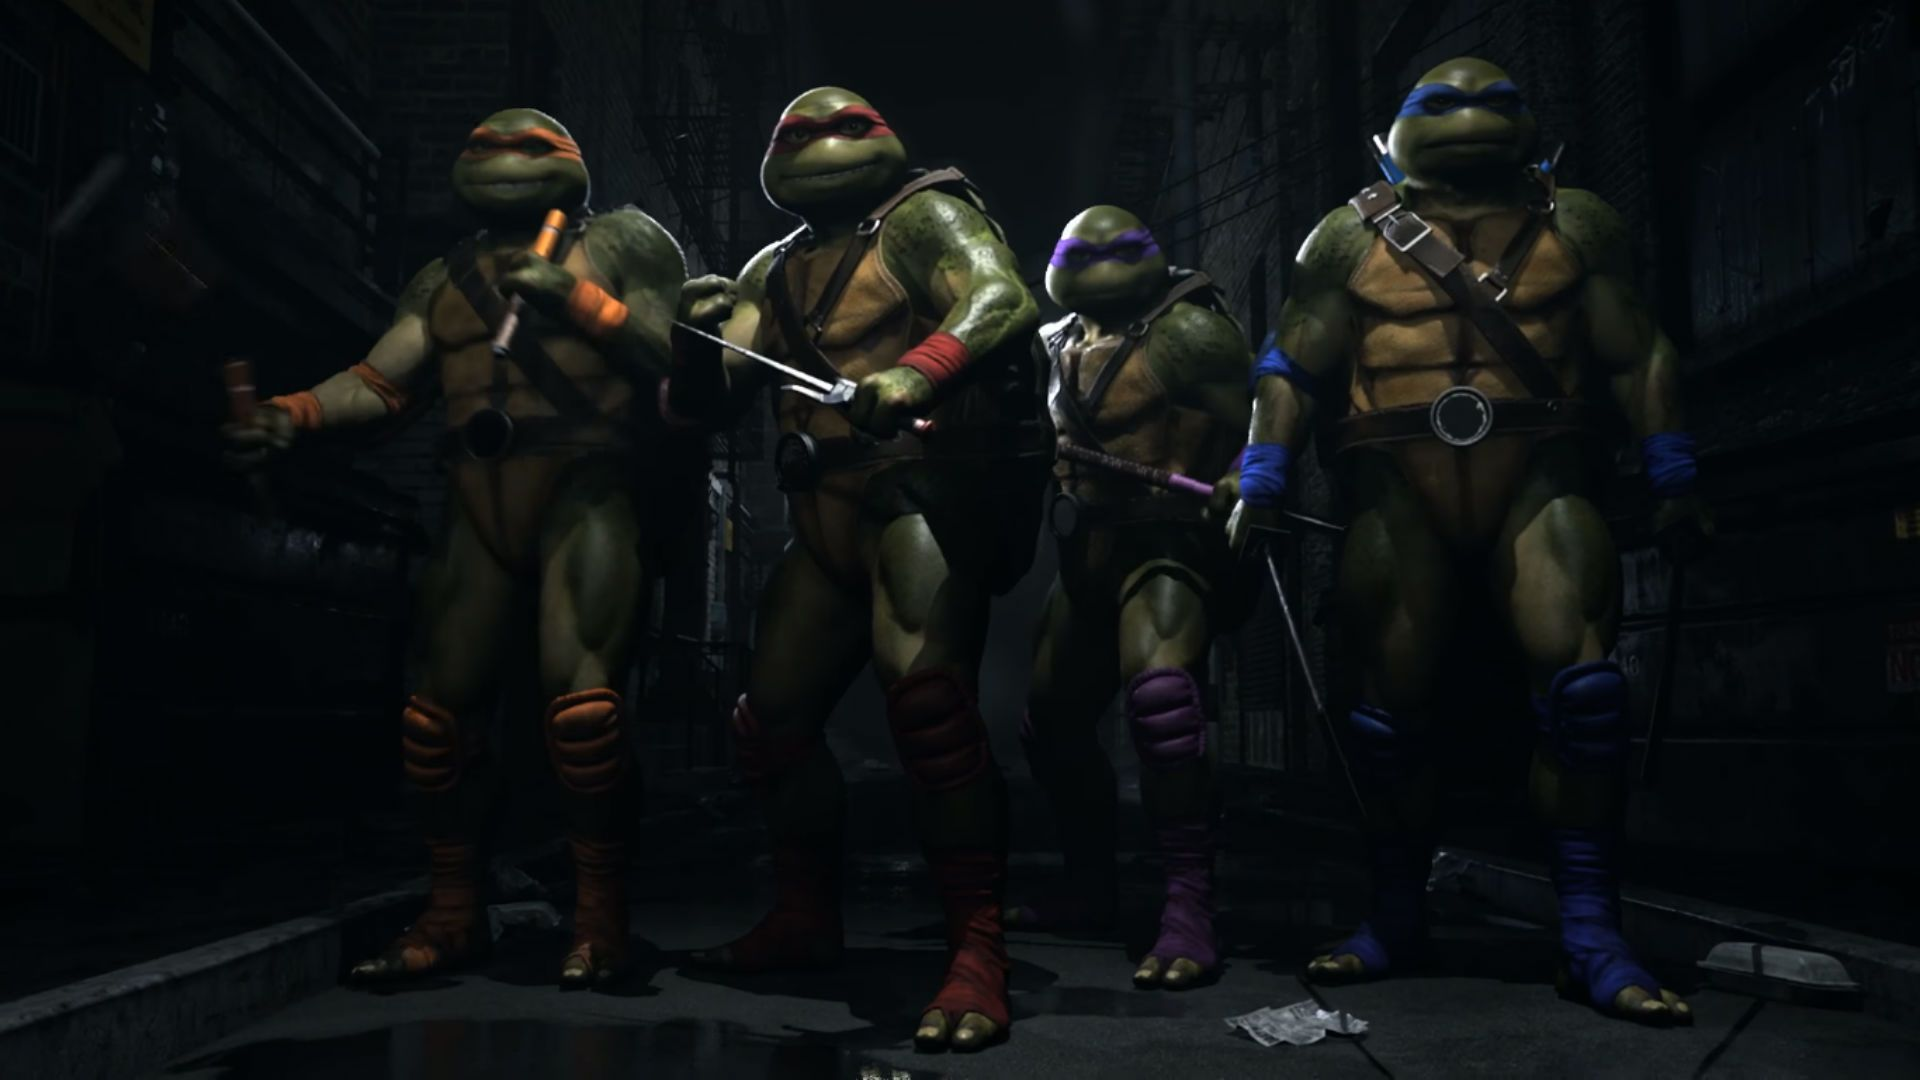 Las Tortugas Ninja estarán disponibles en Injustice 2